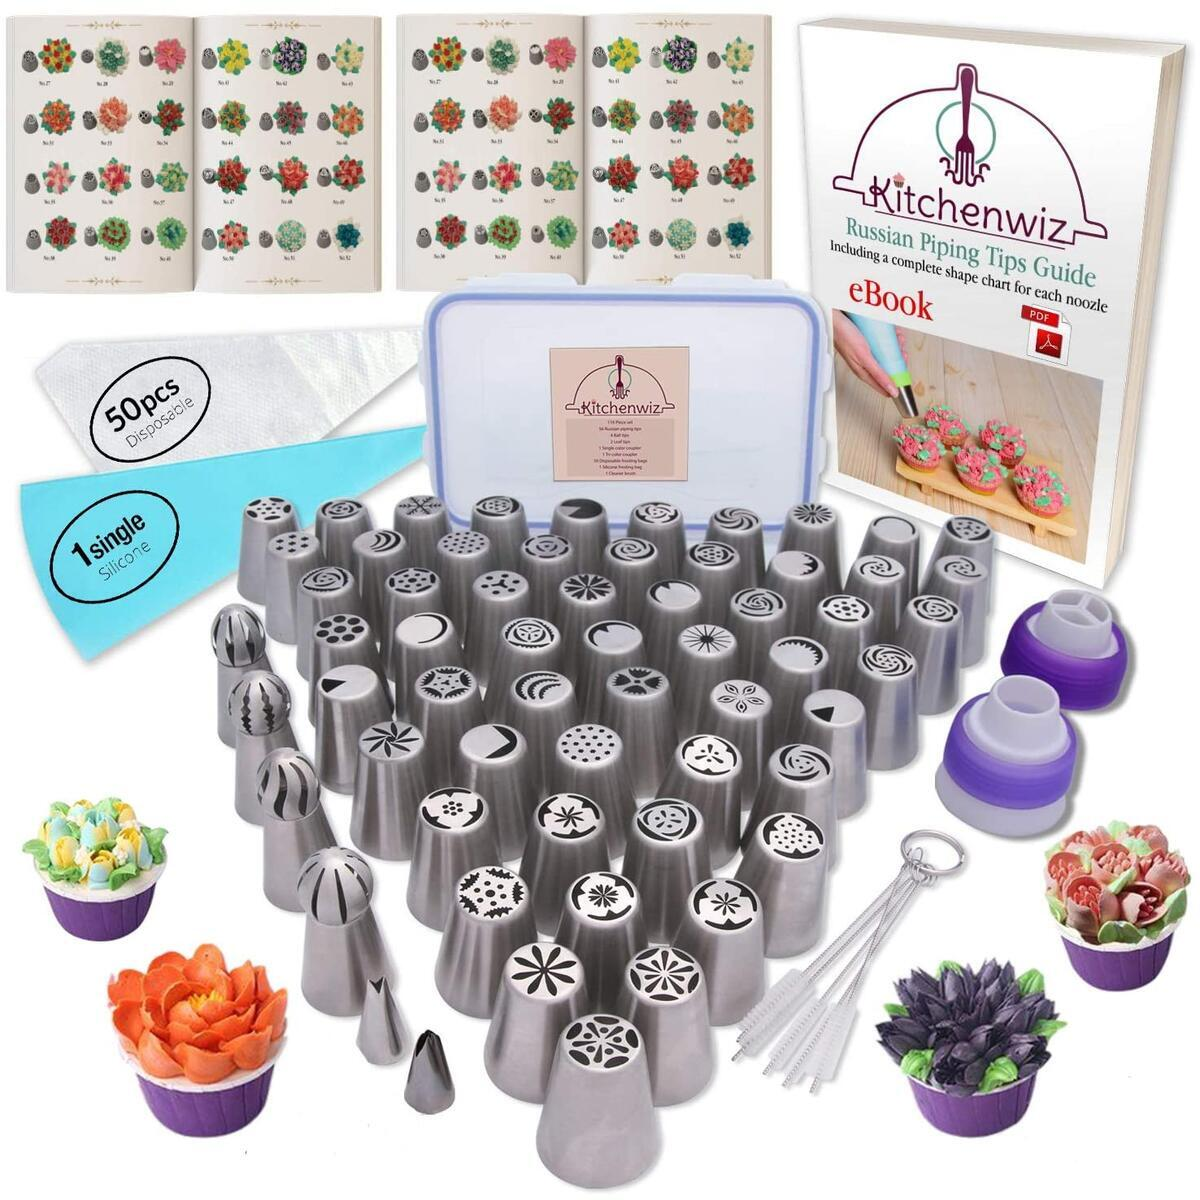 116 Russian Piping Tips Set Cake Decorations Kit